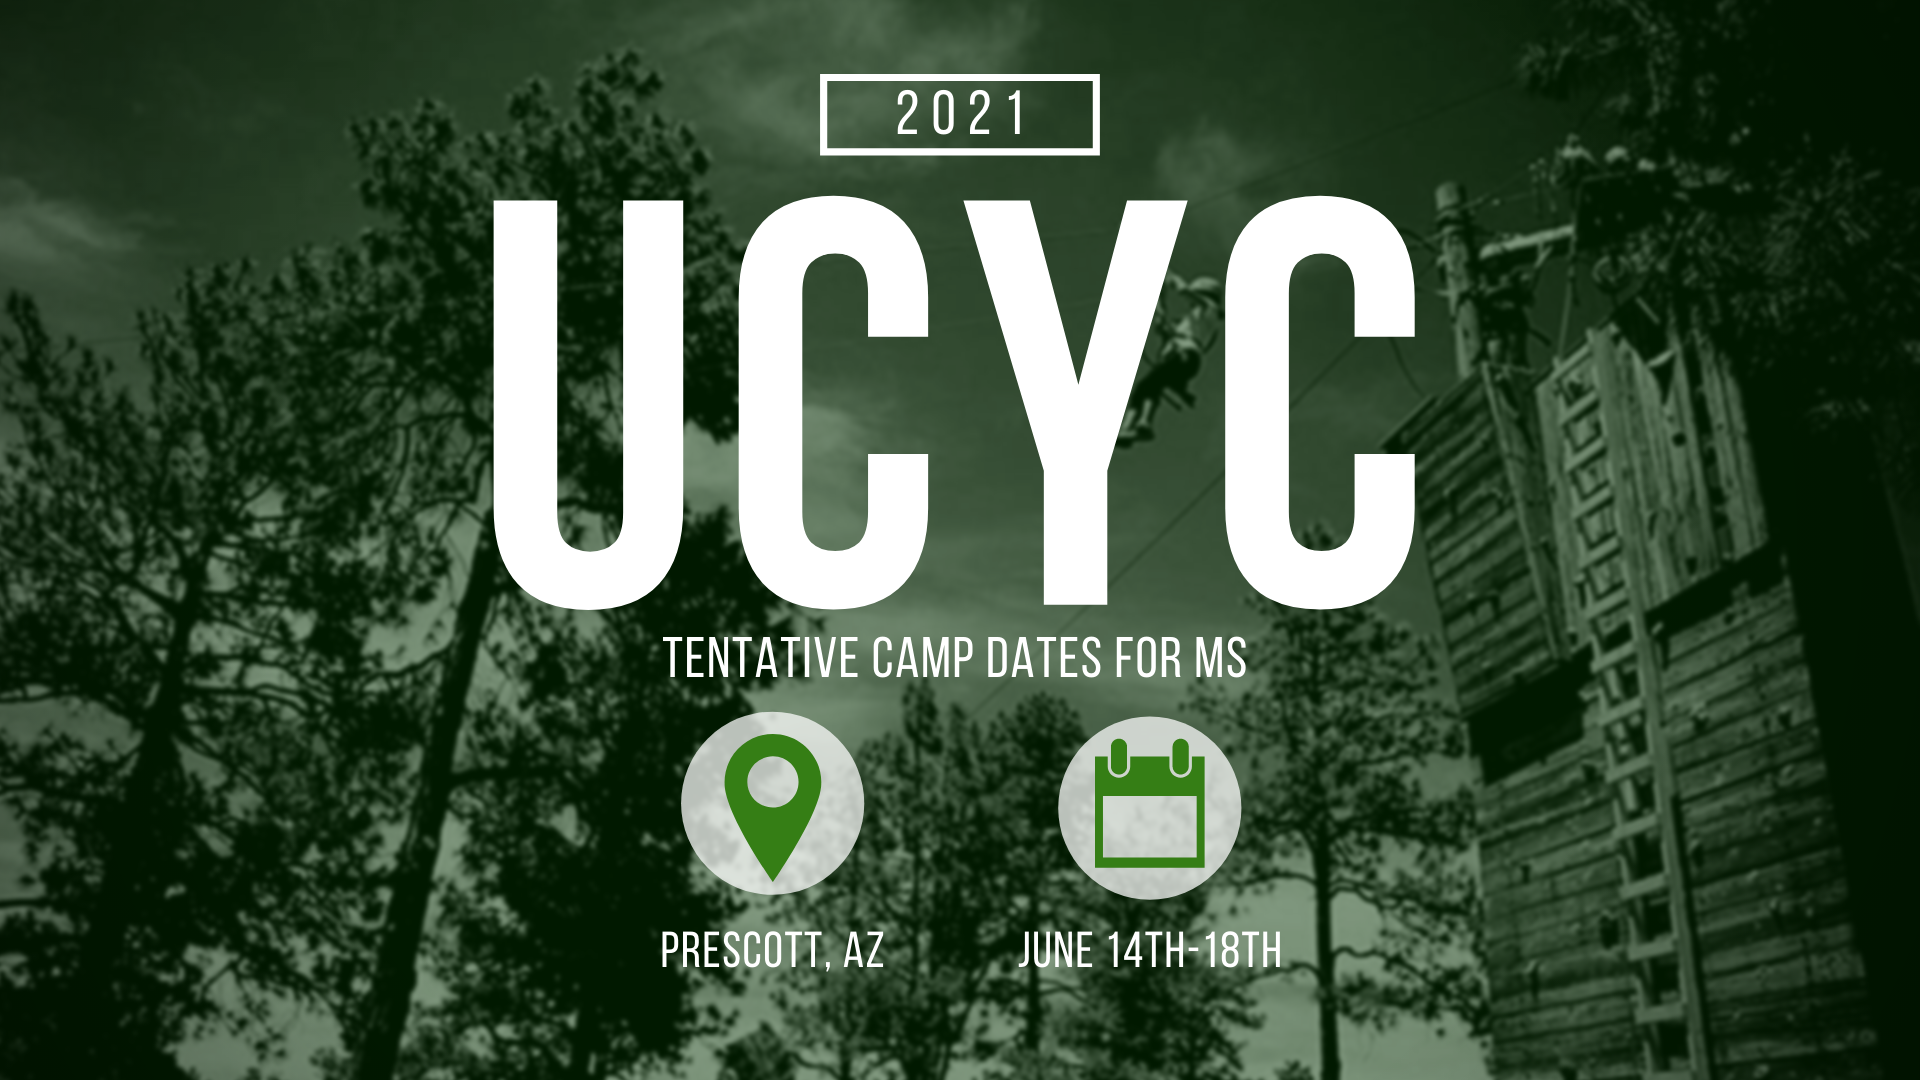 Image: UCYC MS Camp 2021